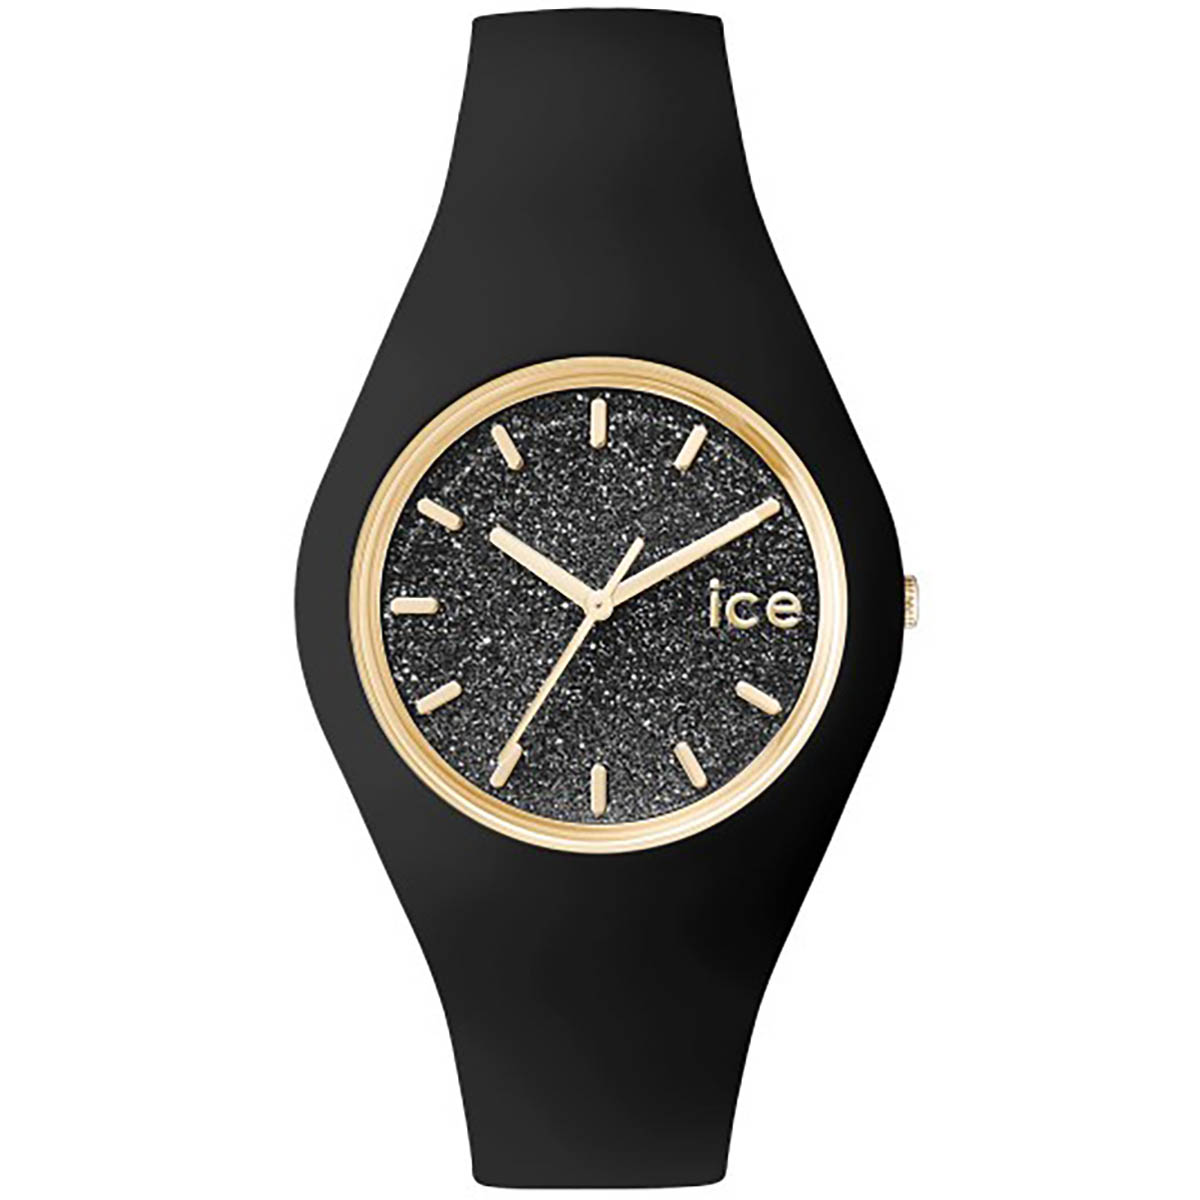 53aa04220cb2f Montre ICE WATCH Silicone - Montre Femme avec CLEOR - ICE.GT.BBK.US15